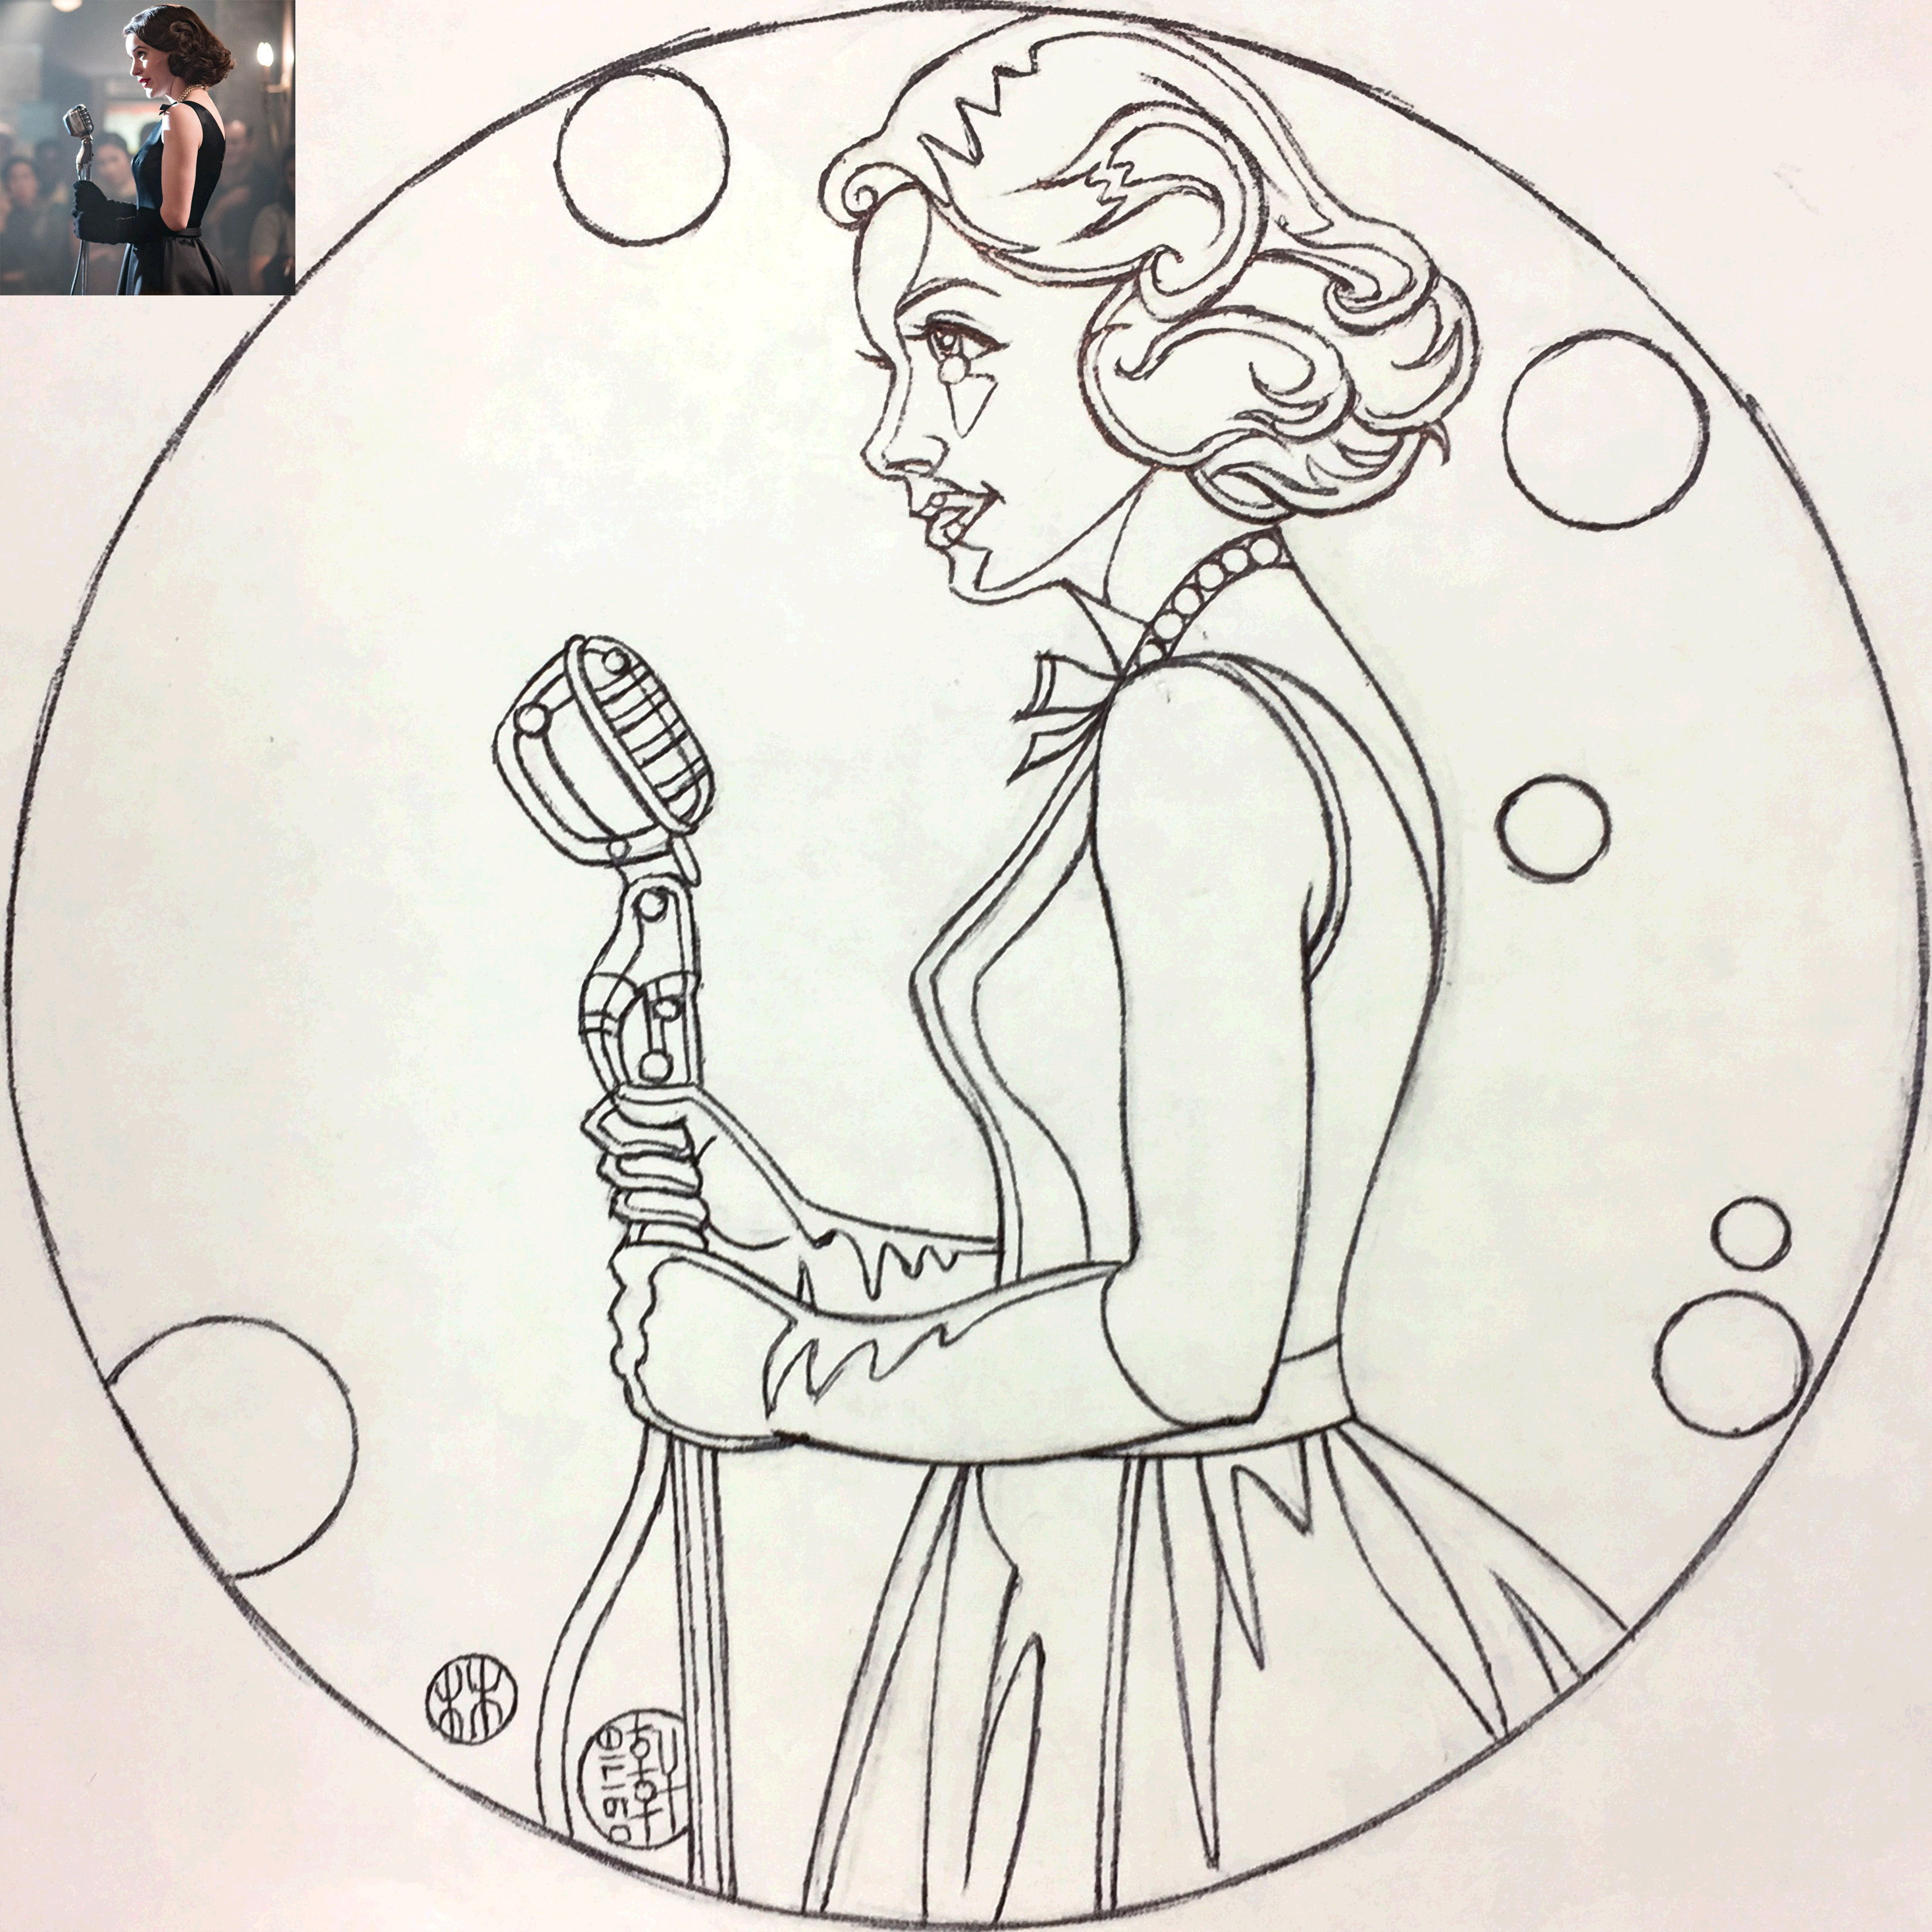 Day 09-17-18 - The Marvelous Mrs. Maisel